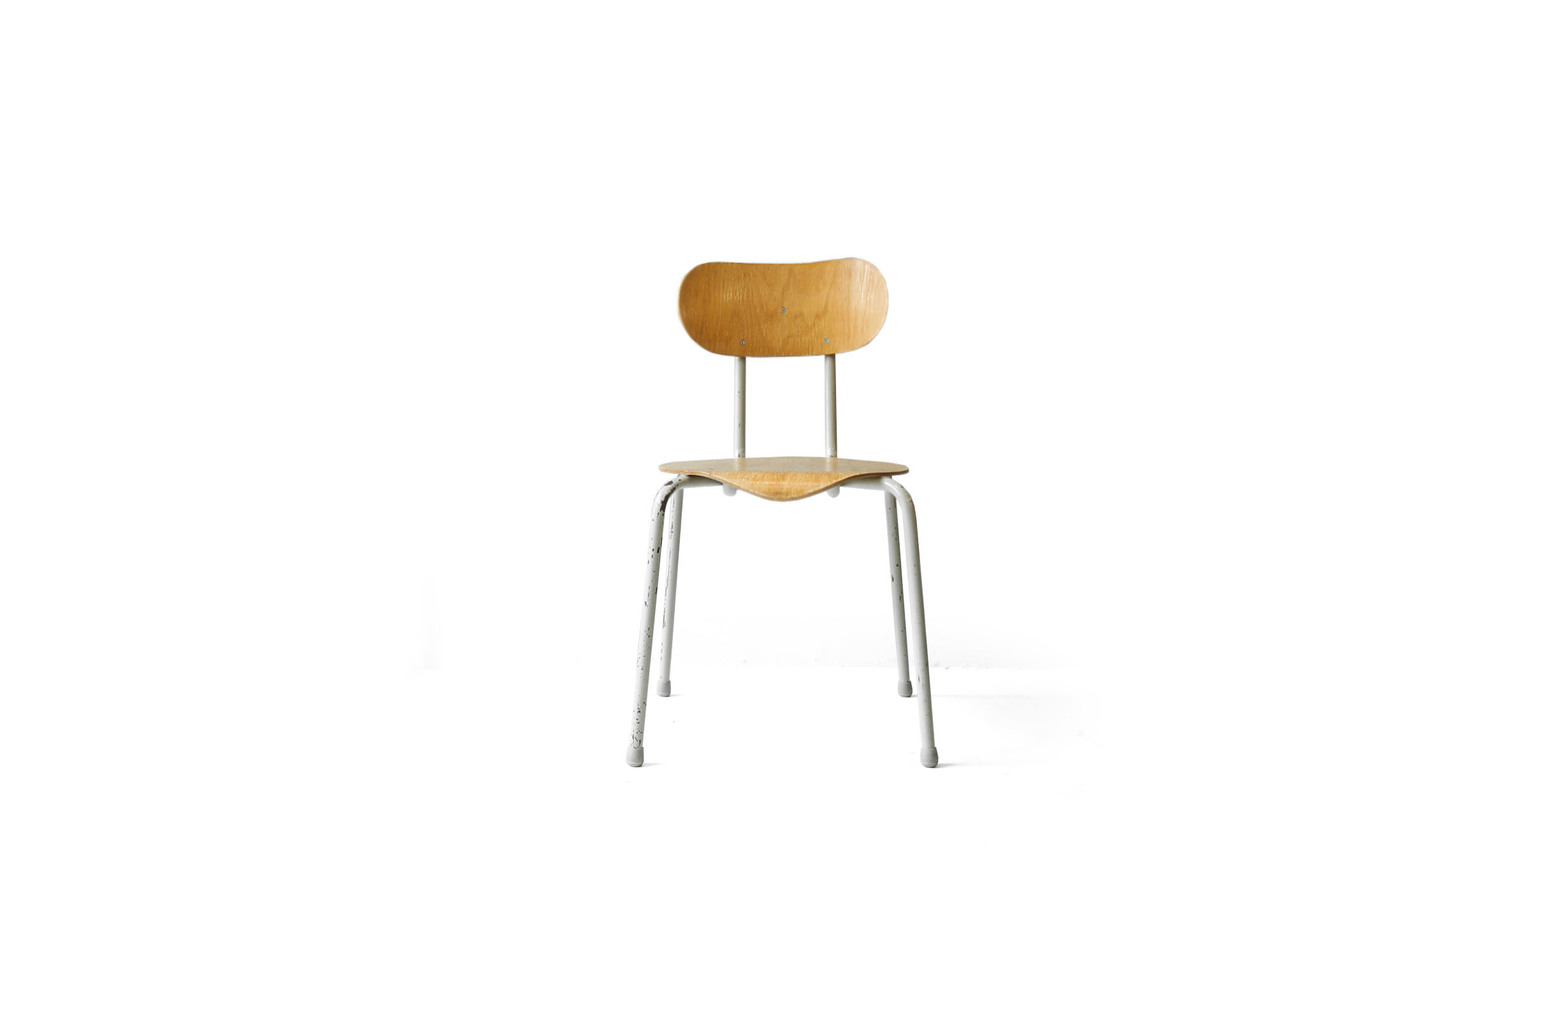 Czech Vintage Plywood Chair/チェコ ヴィンテージ チェア プライウッド 椅子 東欧 インテリア